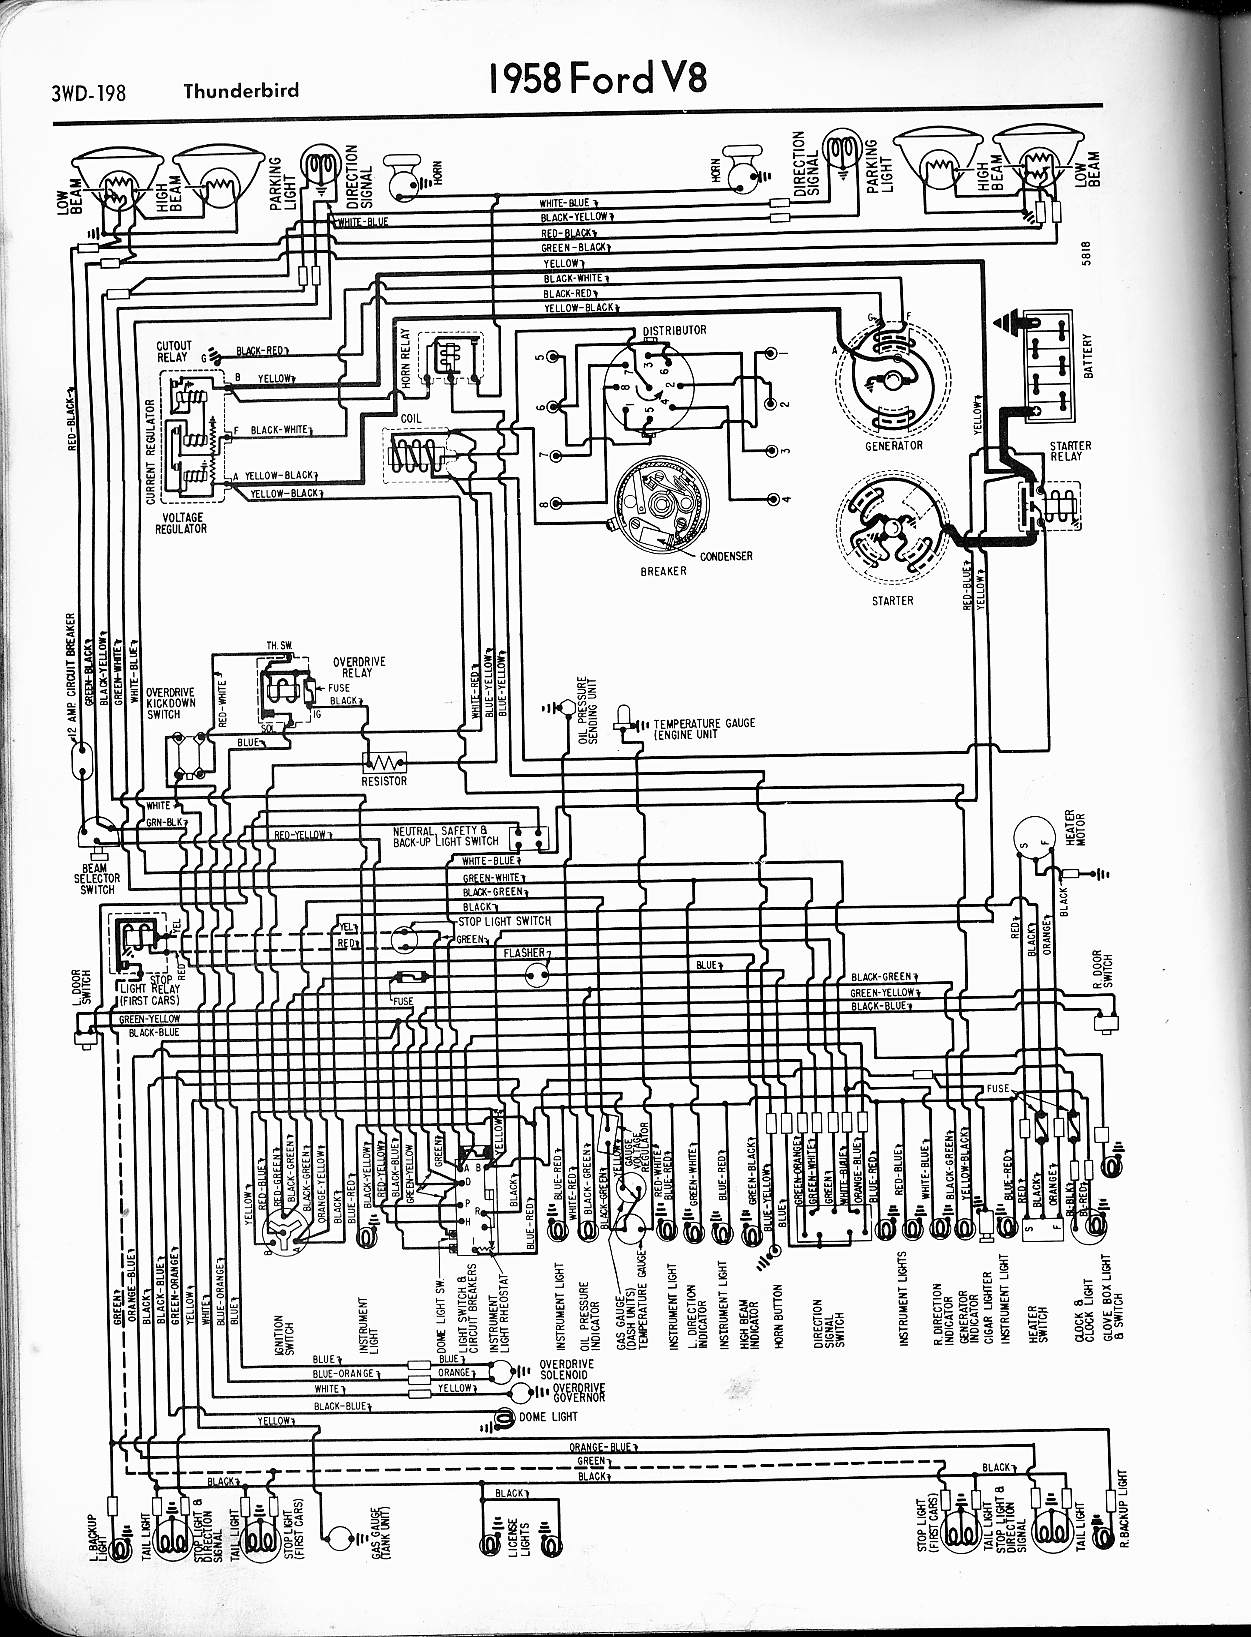 Ford Car Wiring Diagrams Detailed Schematic 1935 Chevrolet Diagram 57 65 Stereo